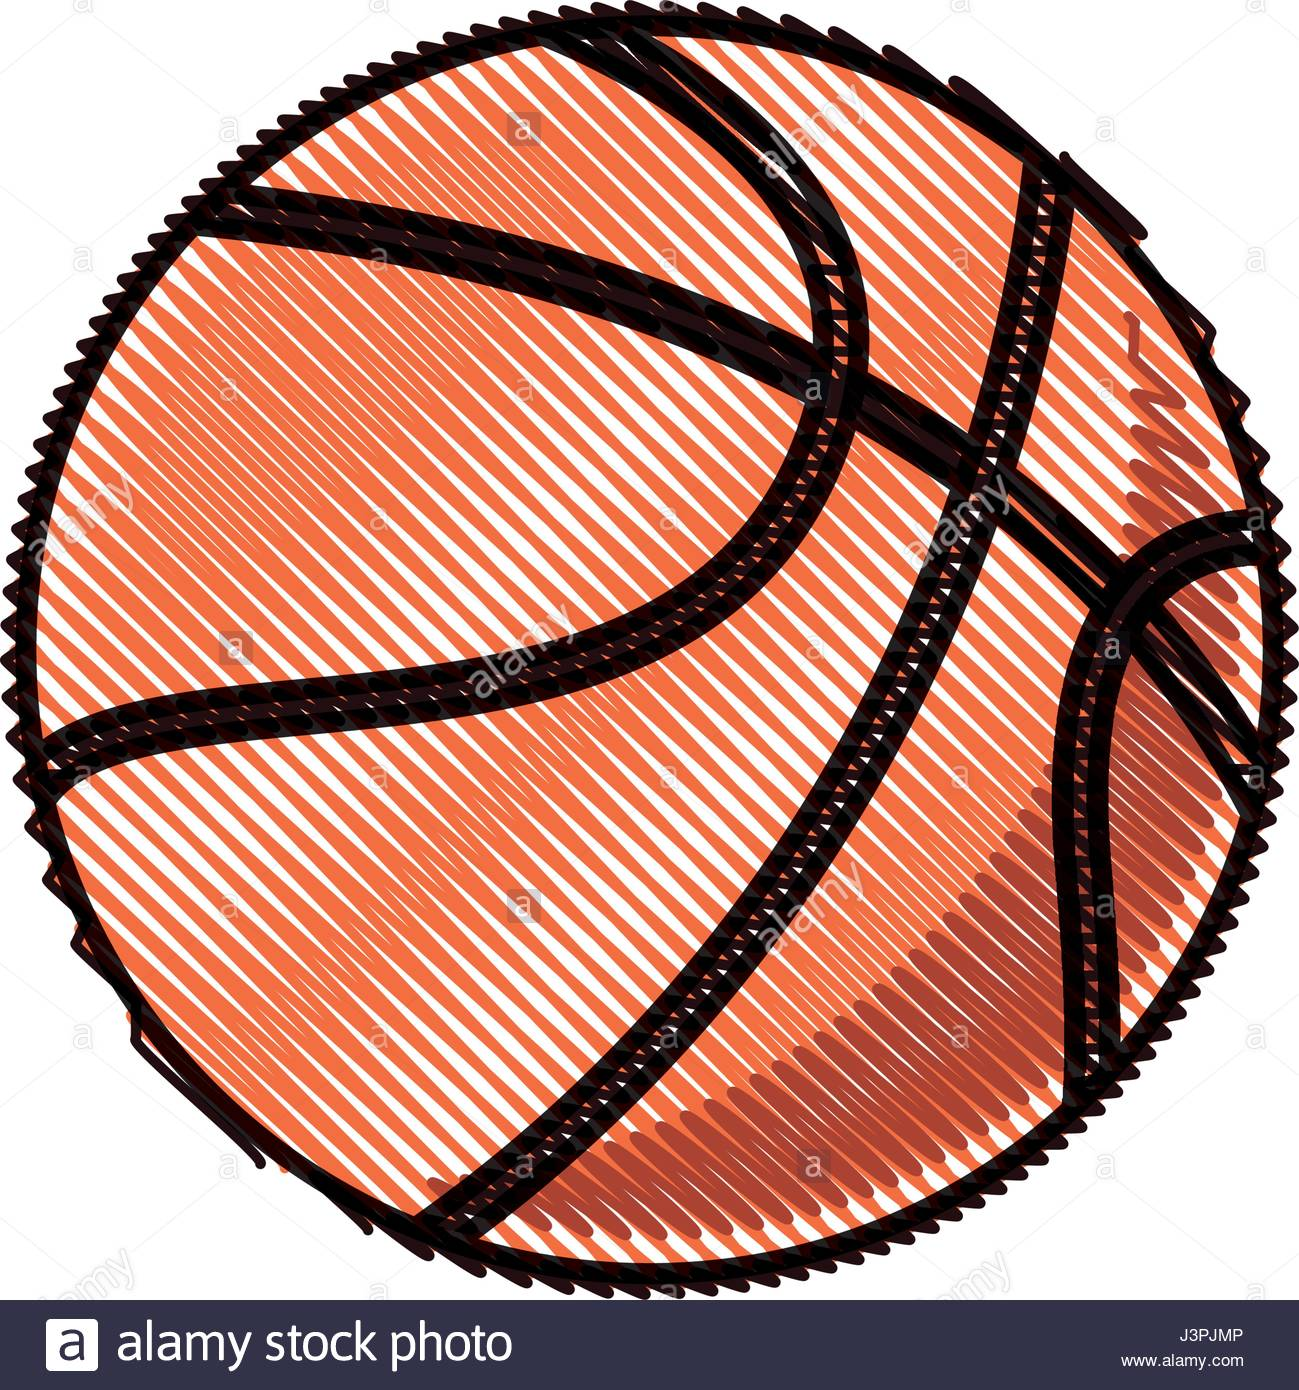 1299x1390 Drawing Basketball Ball Sport Competition Element Stock Vector Art